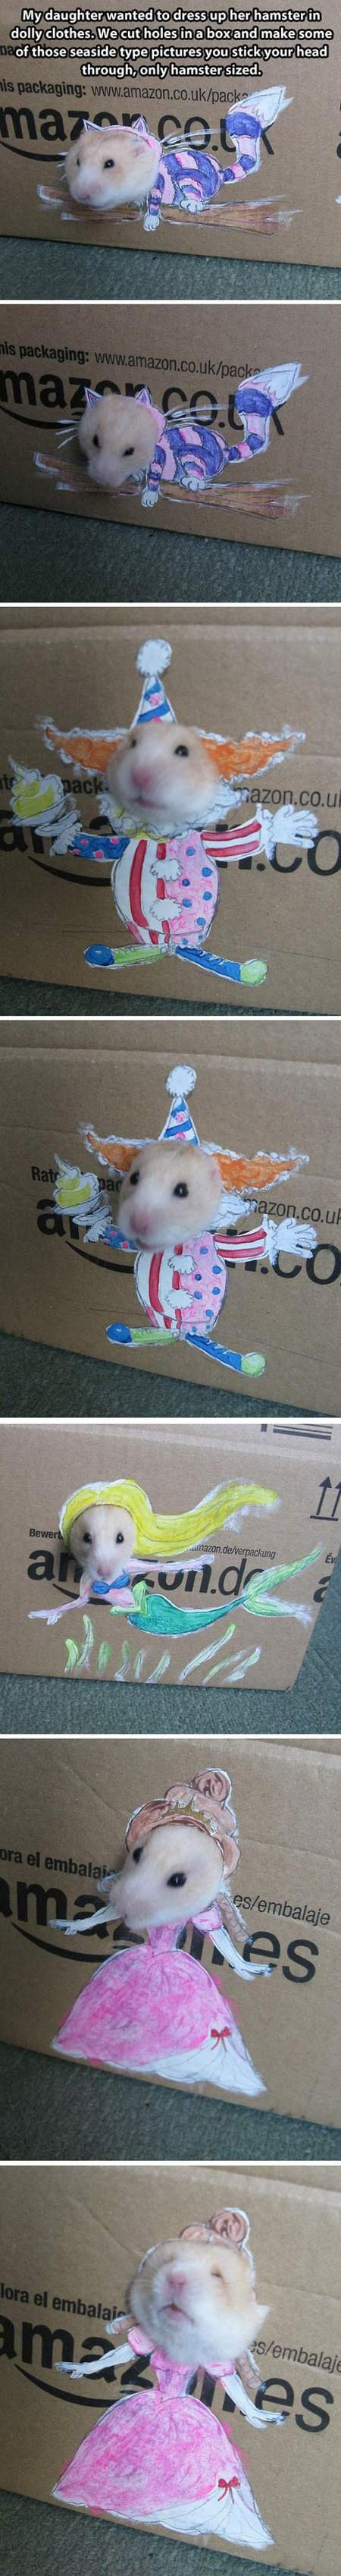 My Daughter Wanted To Dress Up Her Hamster